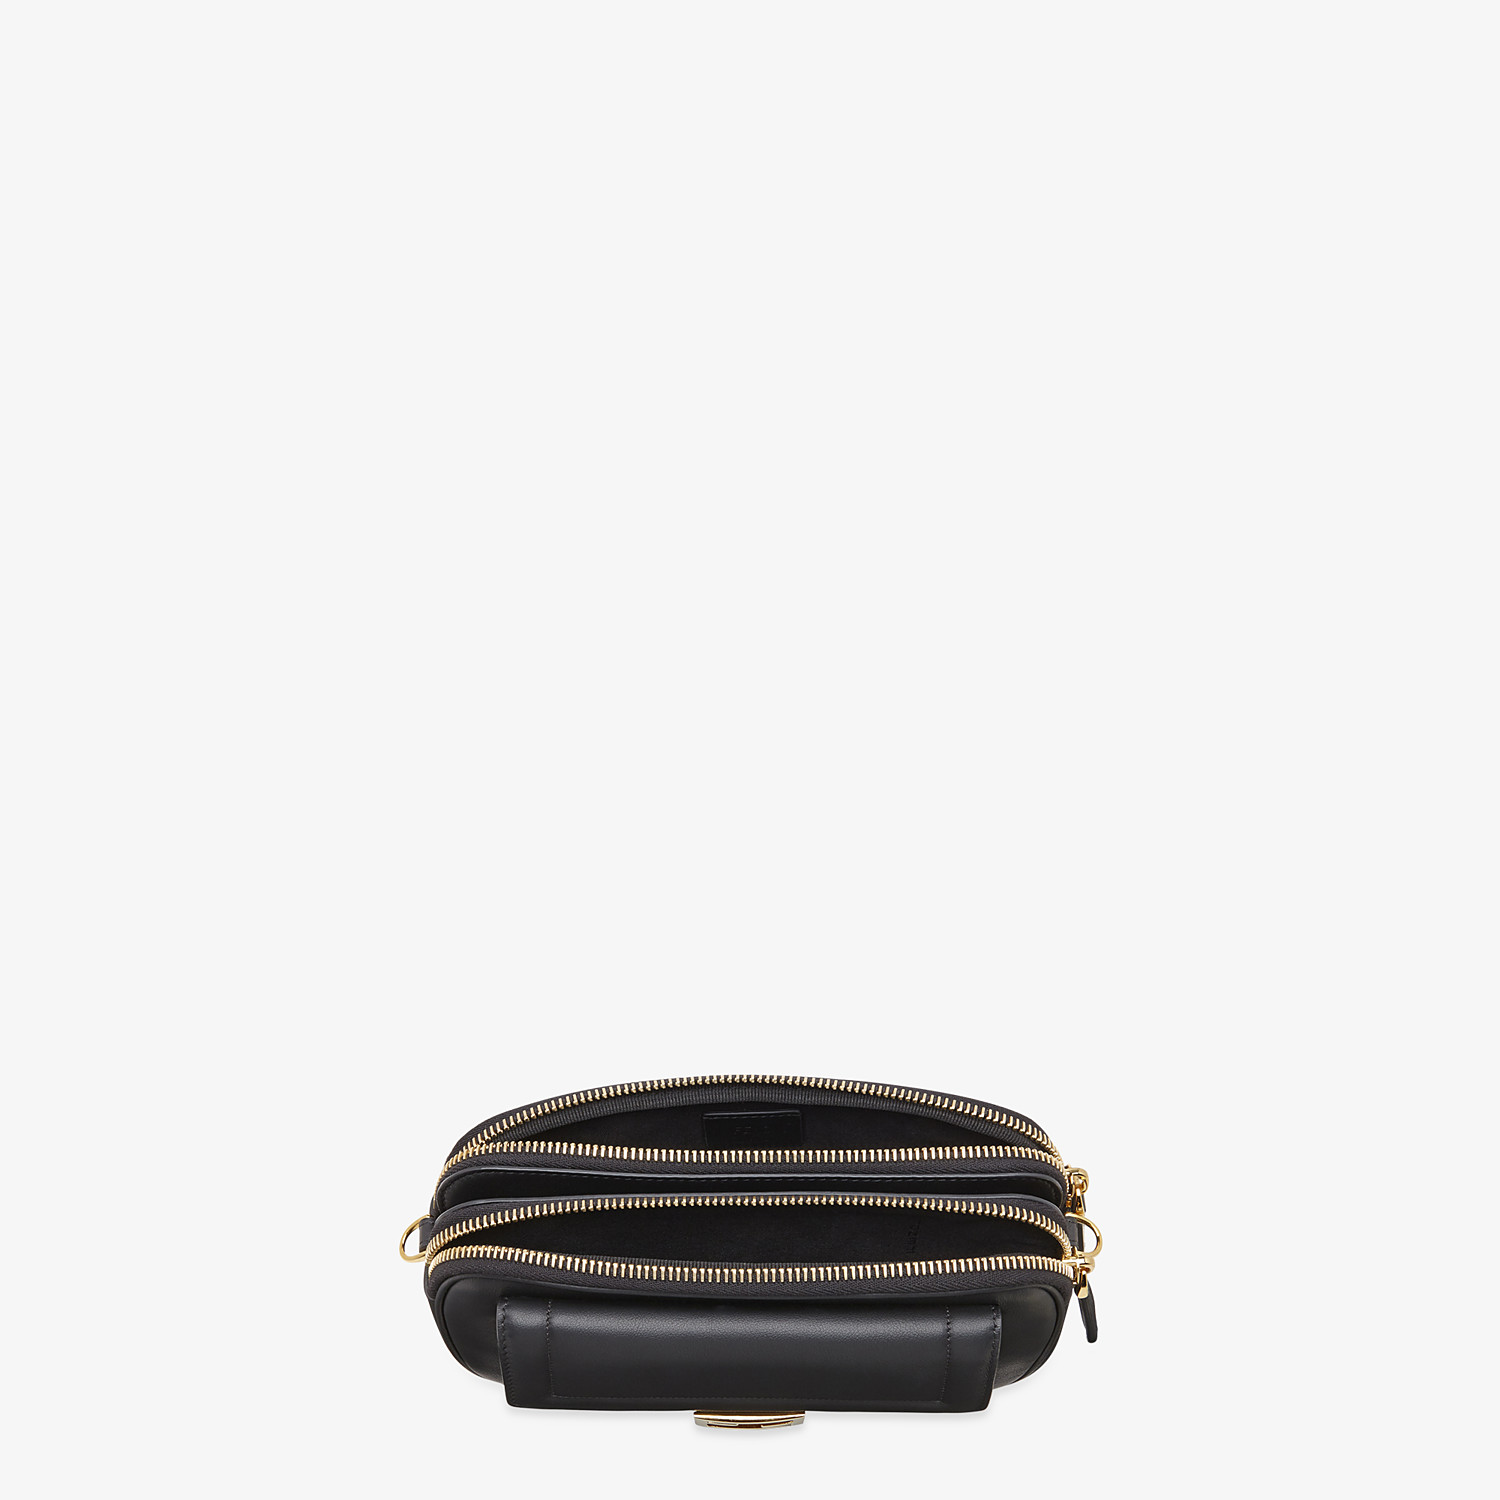 FENDI EASY 2 BAGUETTE - Black leather mini-bag - view 5 detail